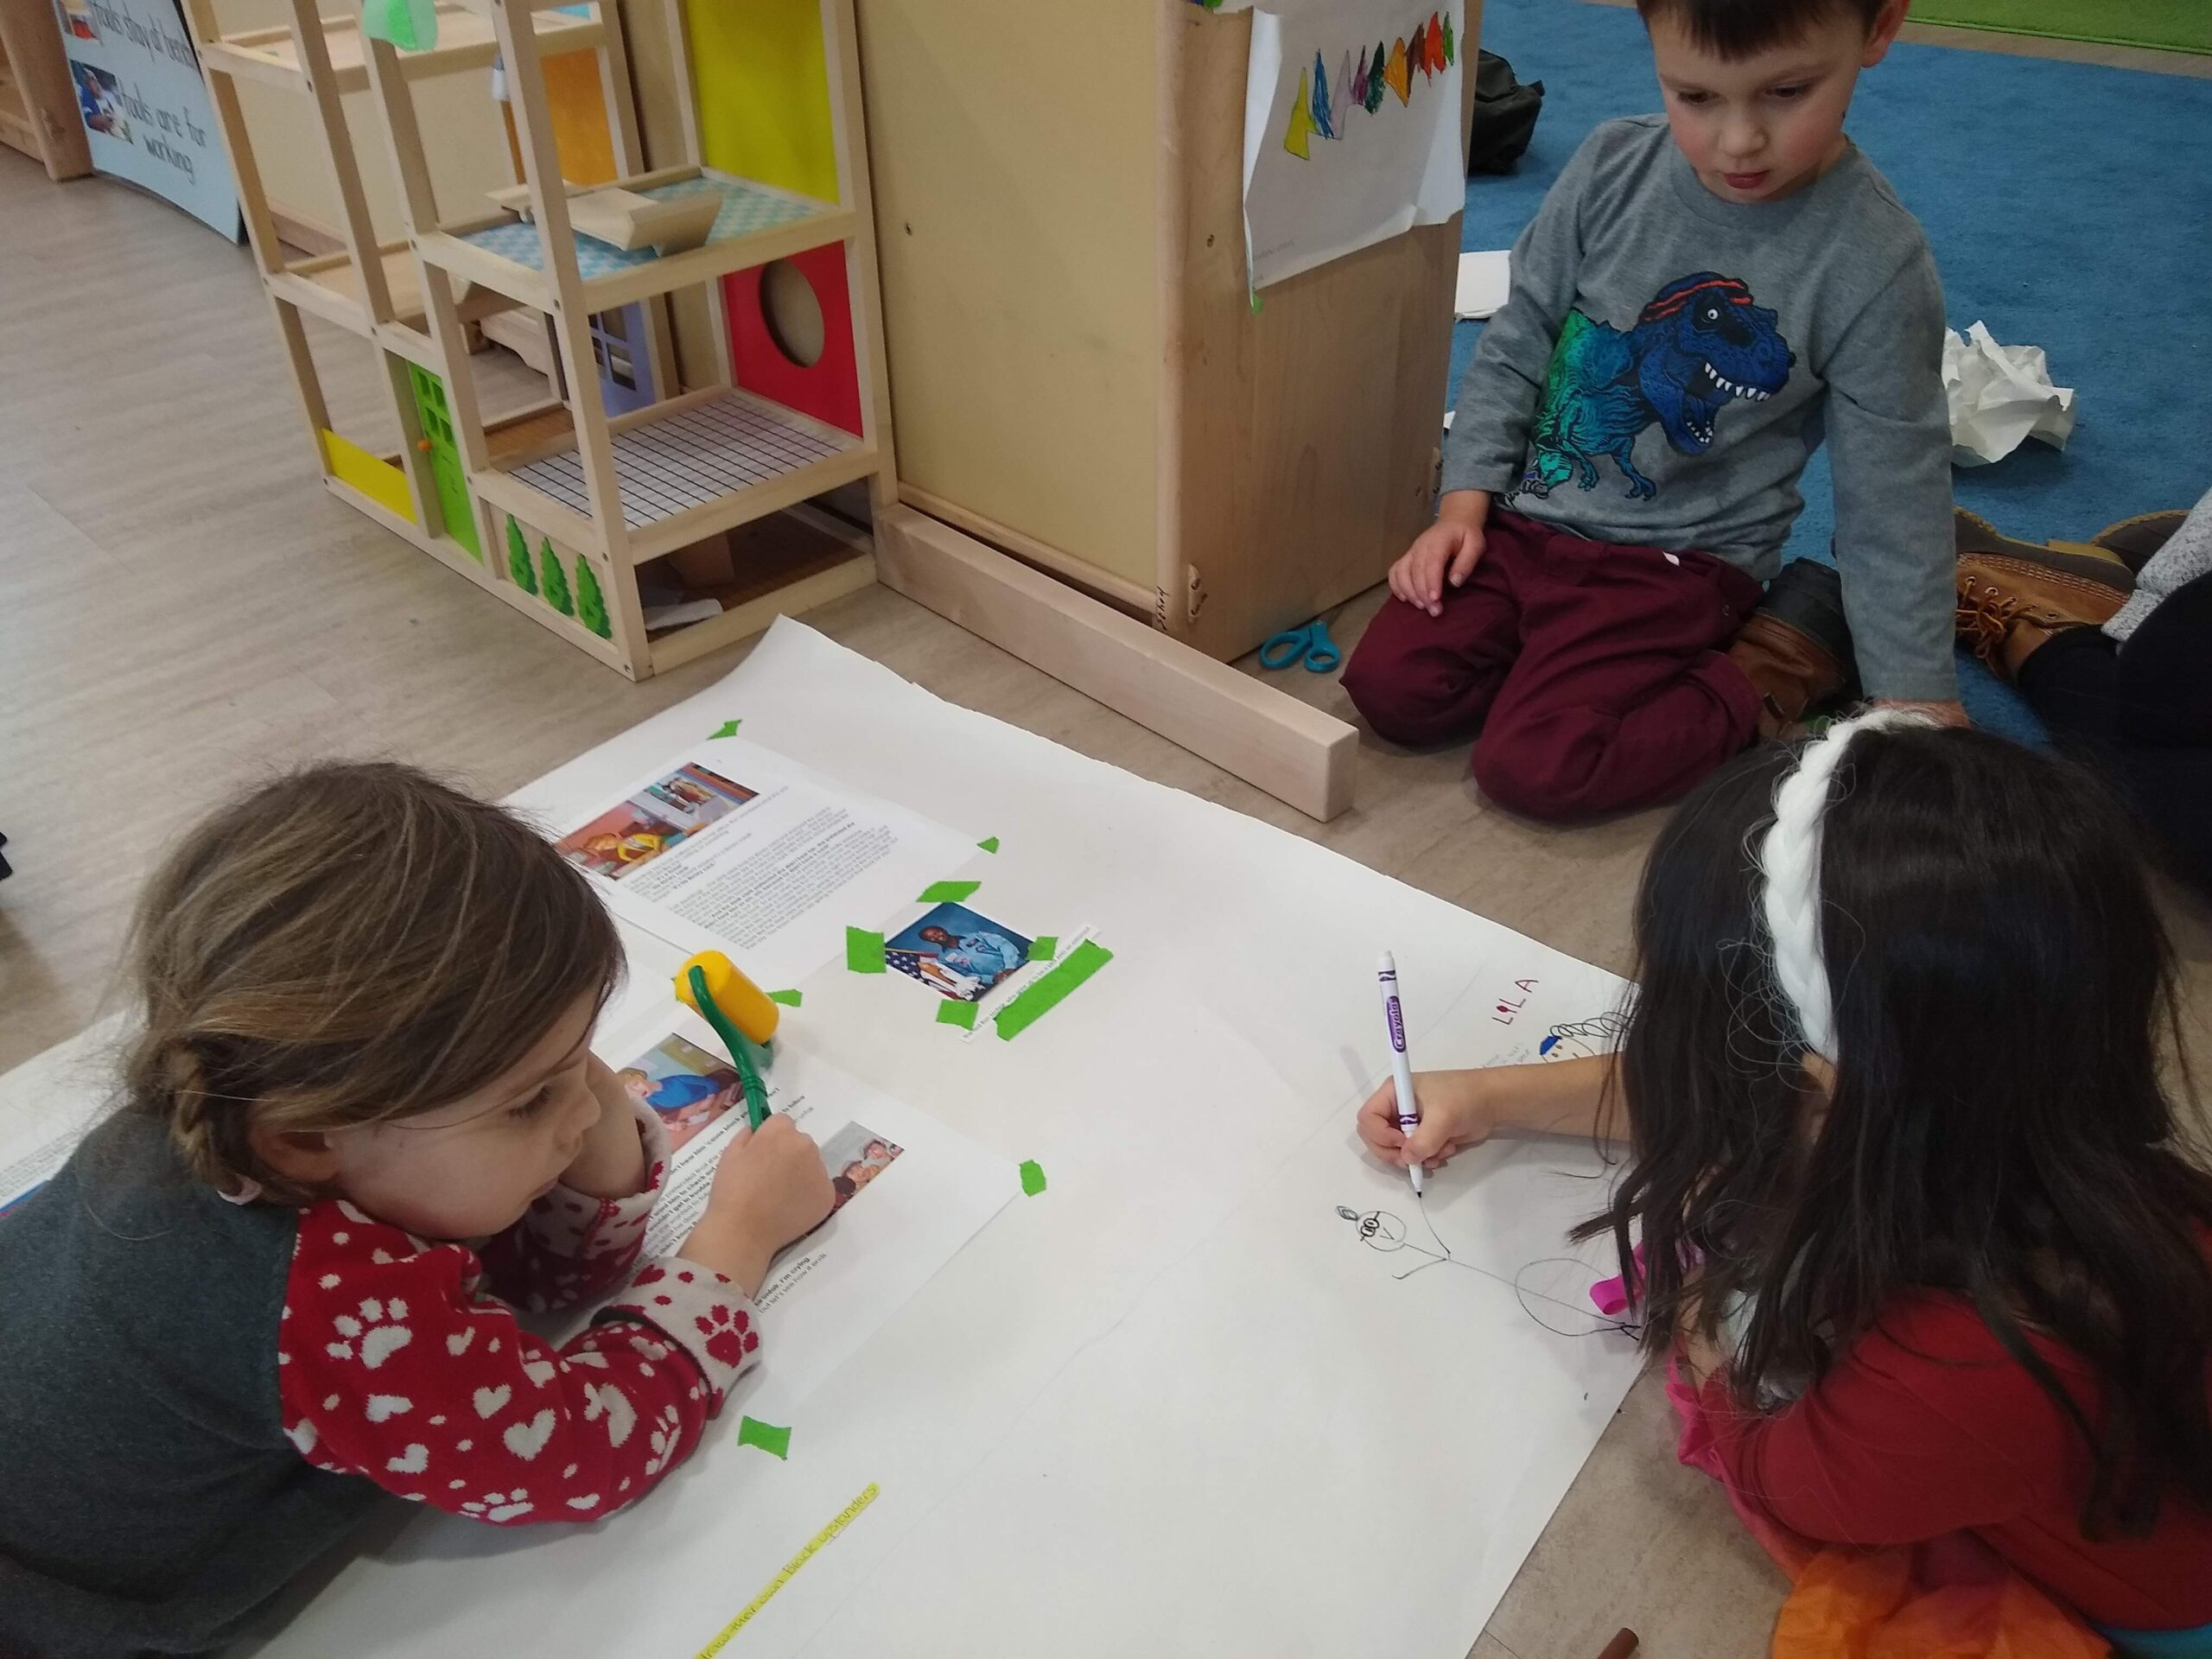 Everyday Anti-Racism with Young Kids